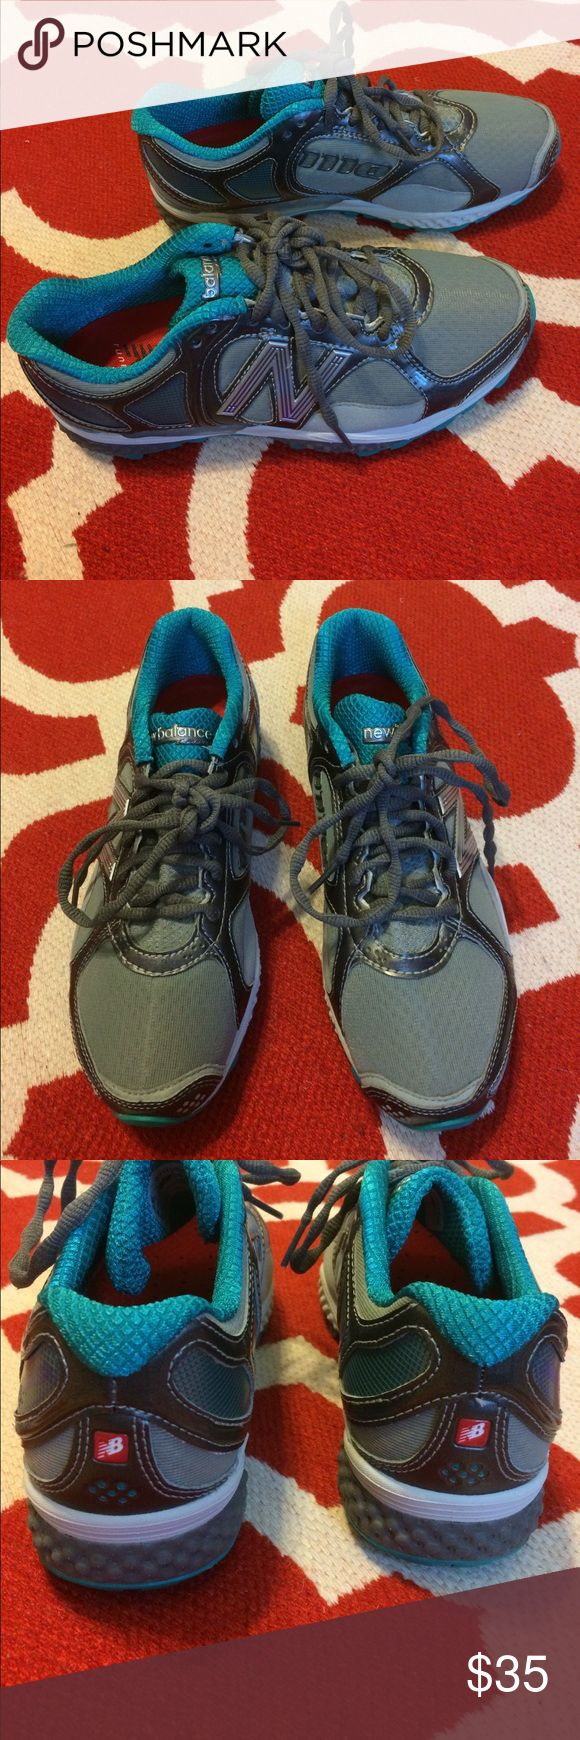 New Balance Trail Running shoes New Balance 1110 Stability Trail Running Shoe WT1110R / Size 6 ✨ Make an offer! New Balance Shoes Athletic Shoes